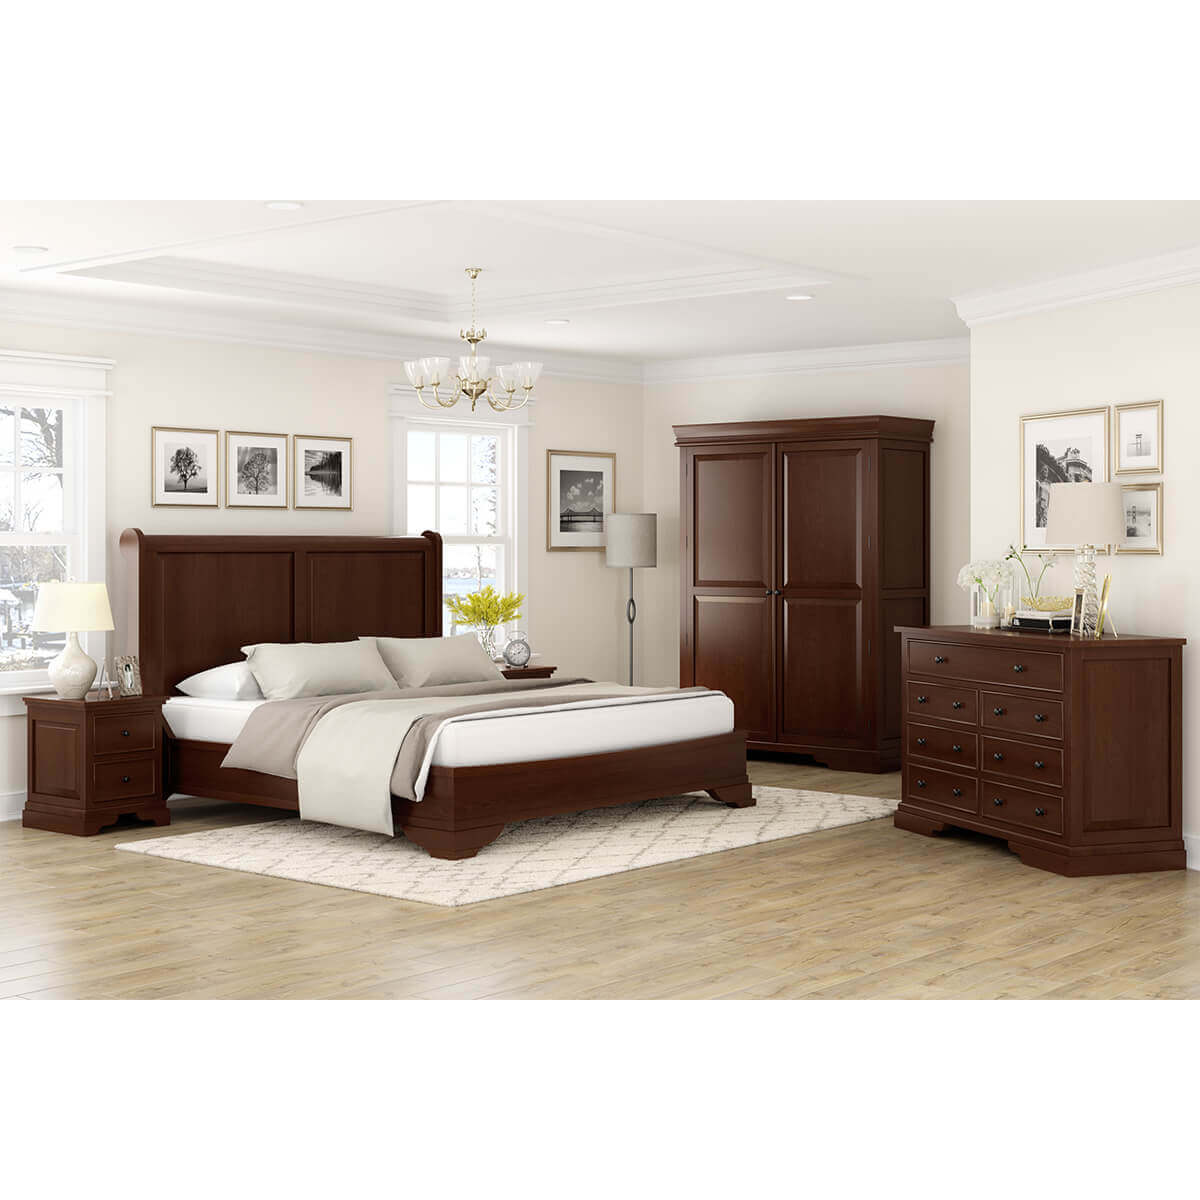 Accoville Mahogany Traditional 5 Piece Bedroom Set